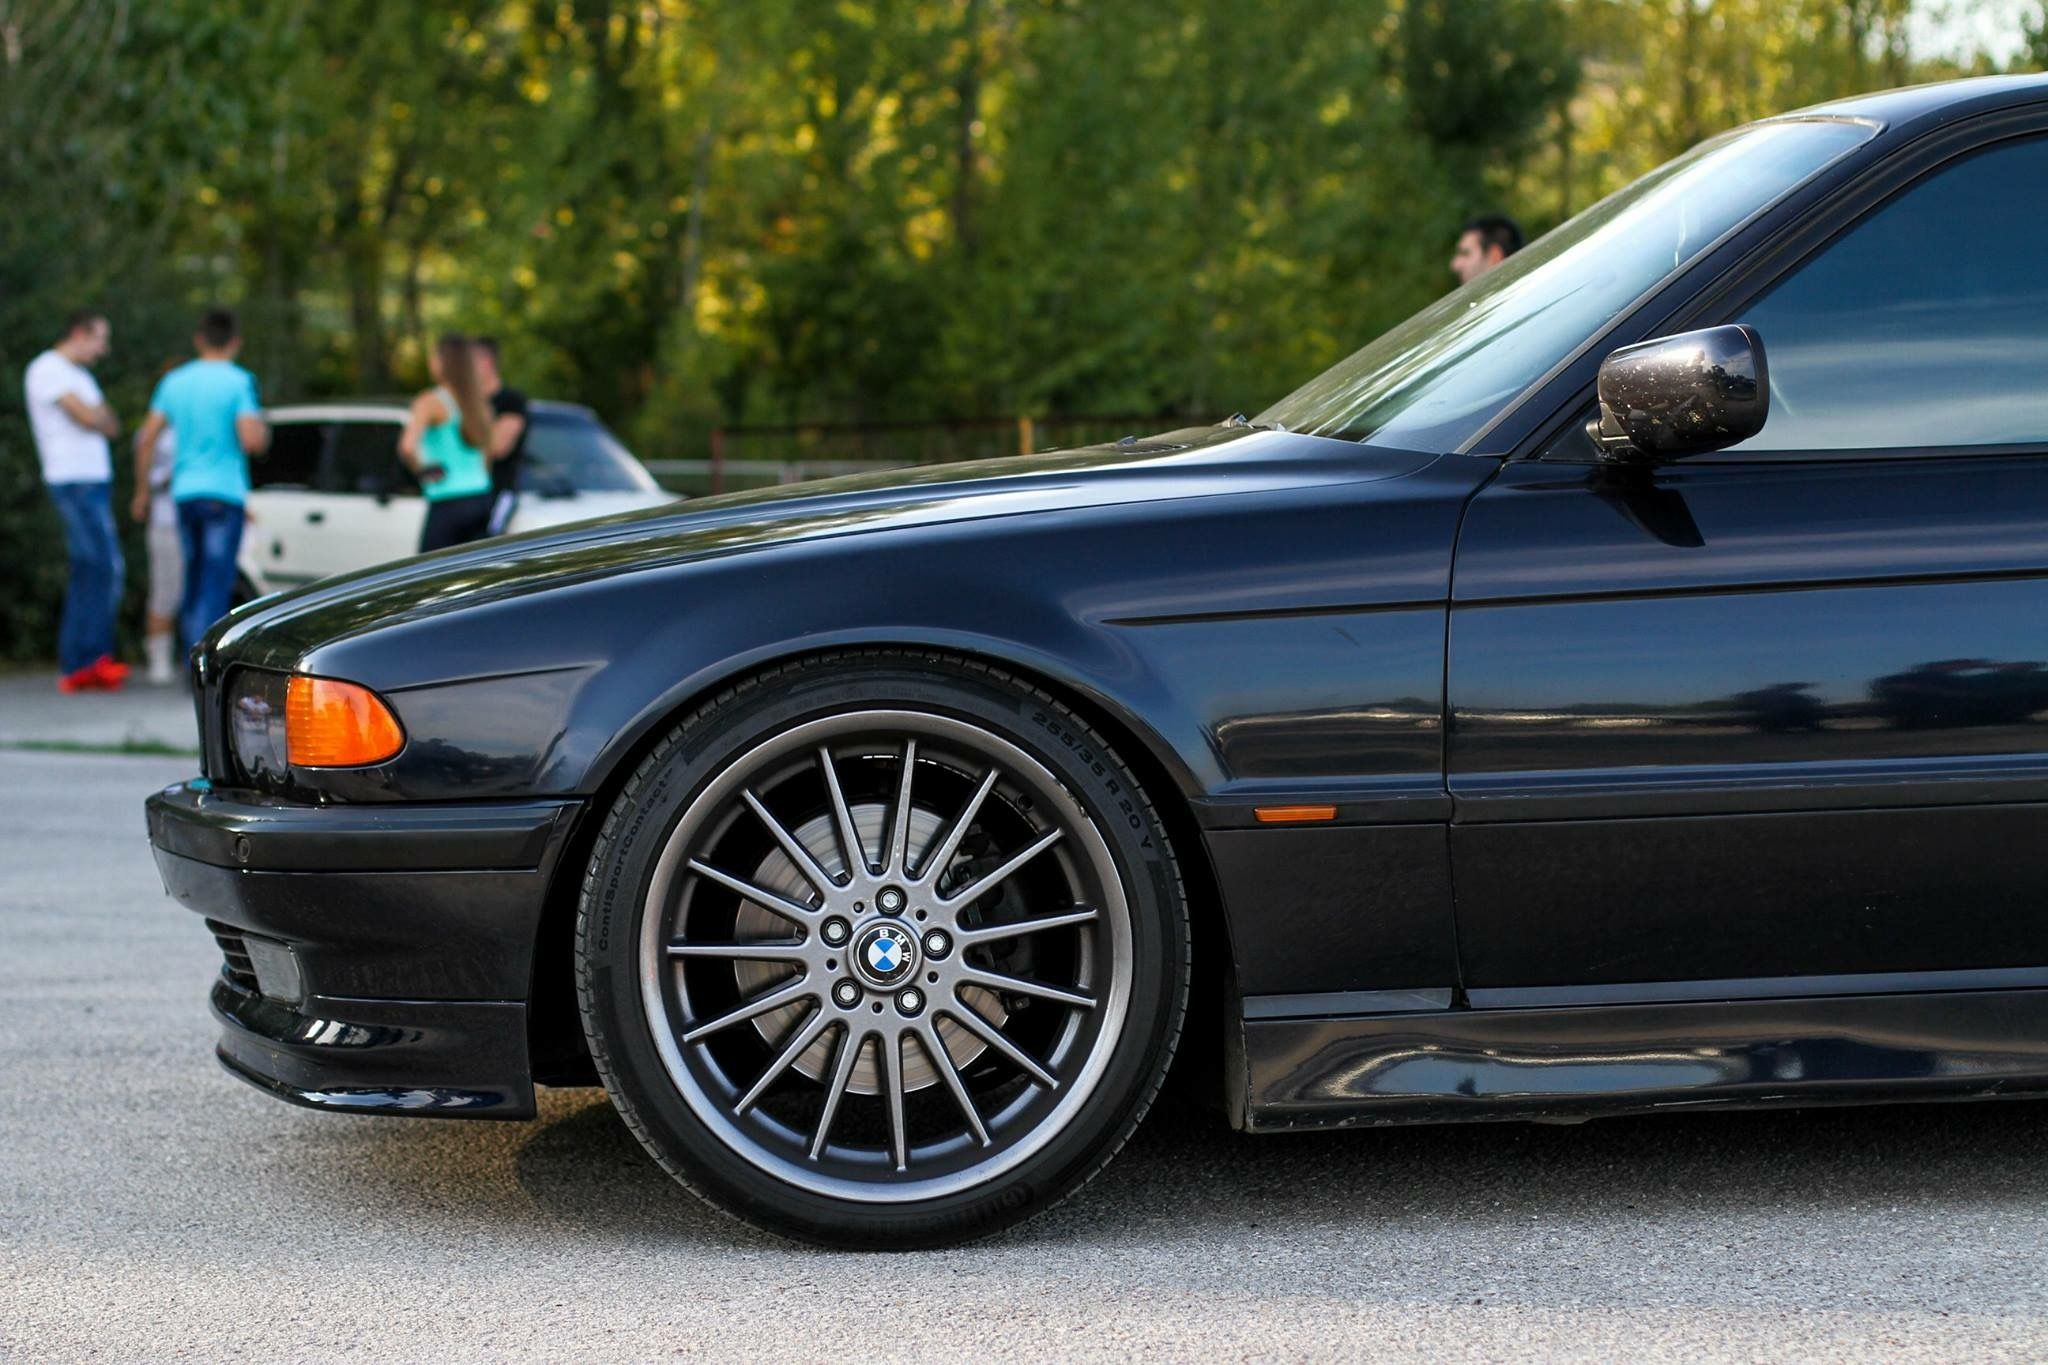 E38 740d Style 32 20 Alpina Lippe With Images Bmw E38 Bmw